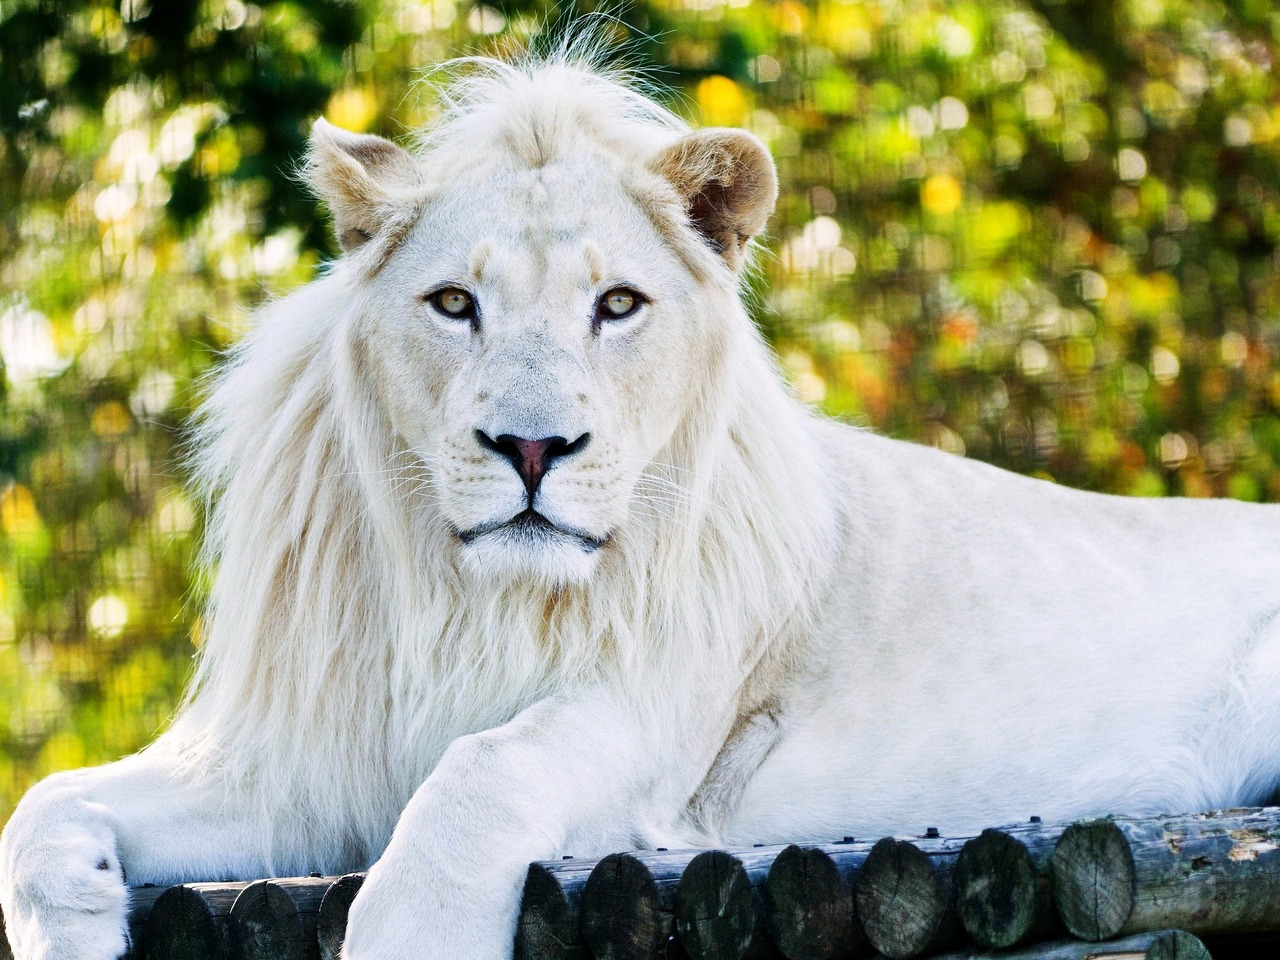 Download White Lion HD Wallpaper In 1280x960 Screen Resolution